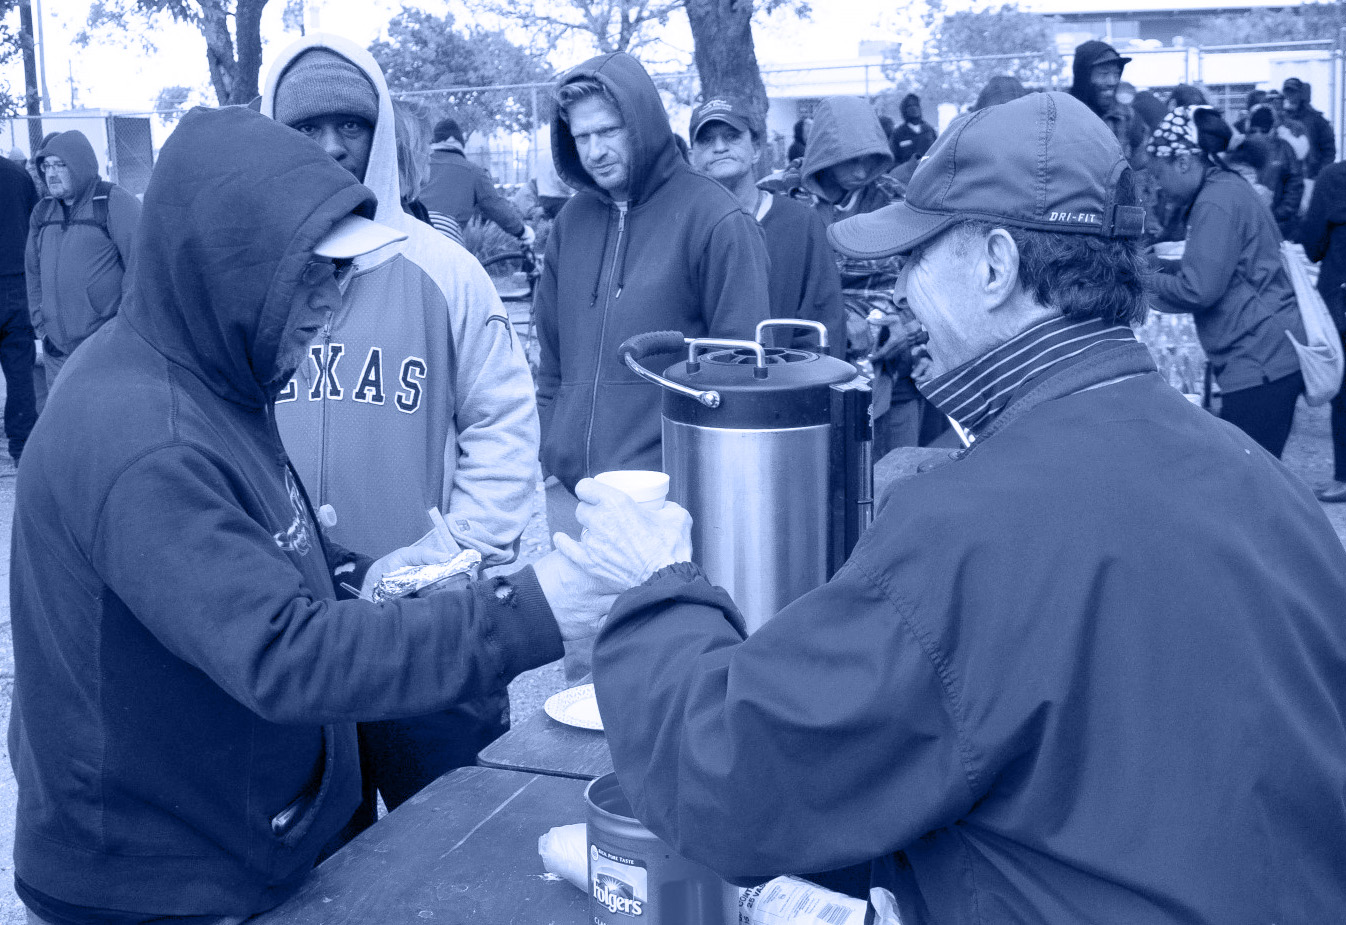 Giving Coffee to Homeless